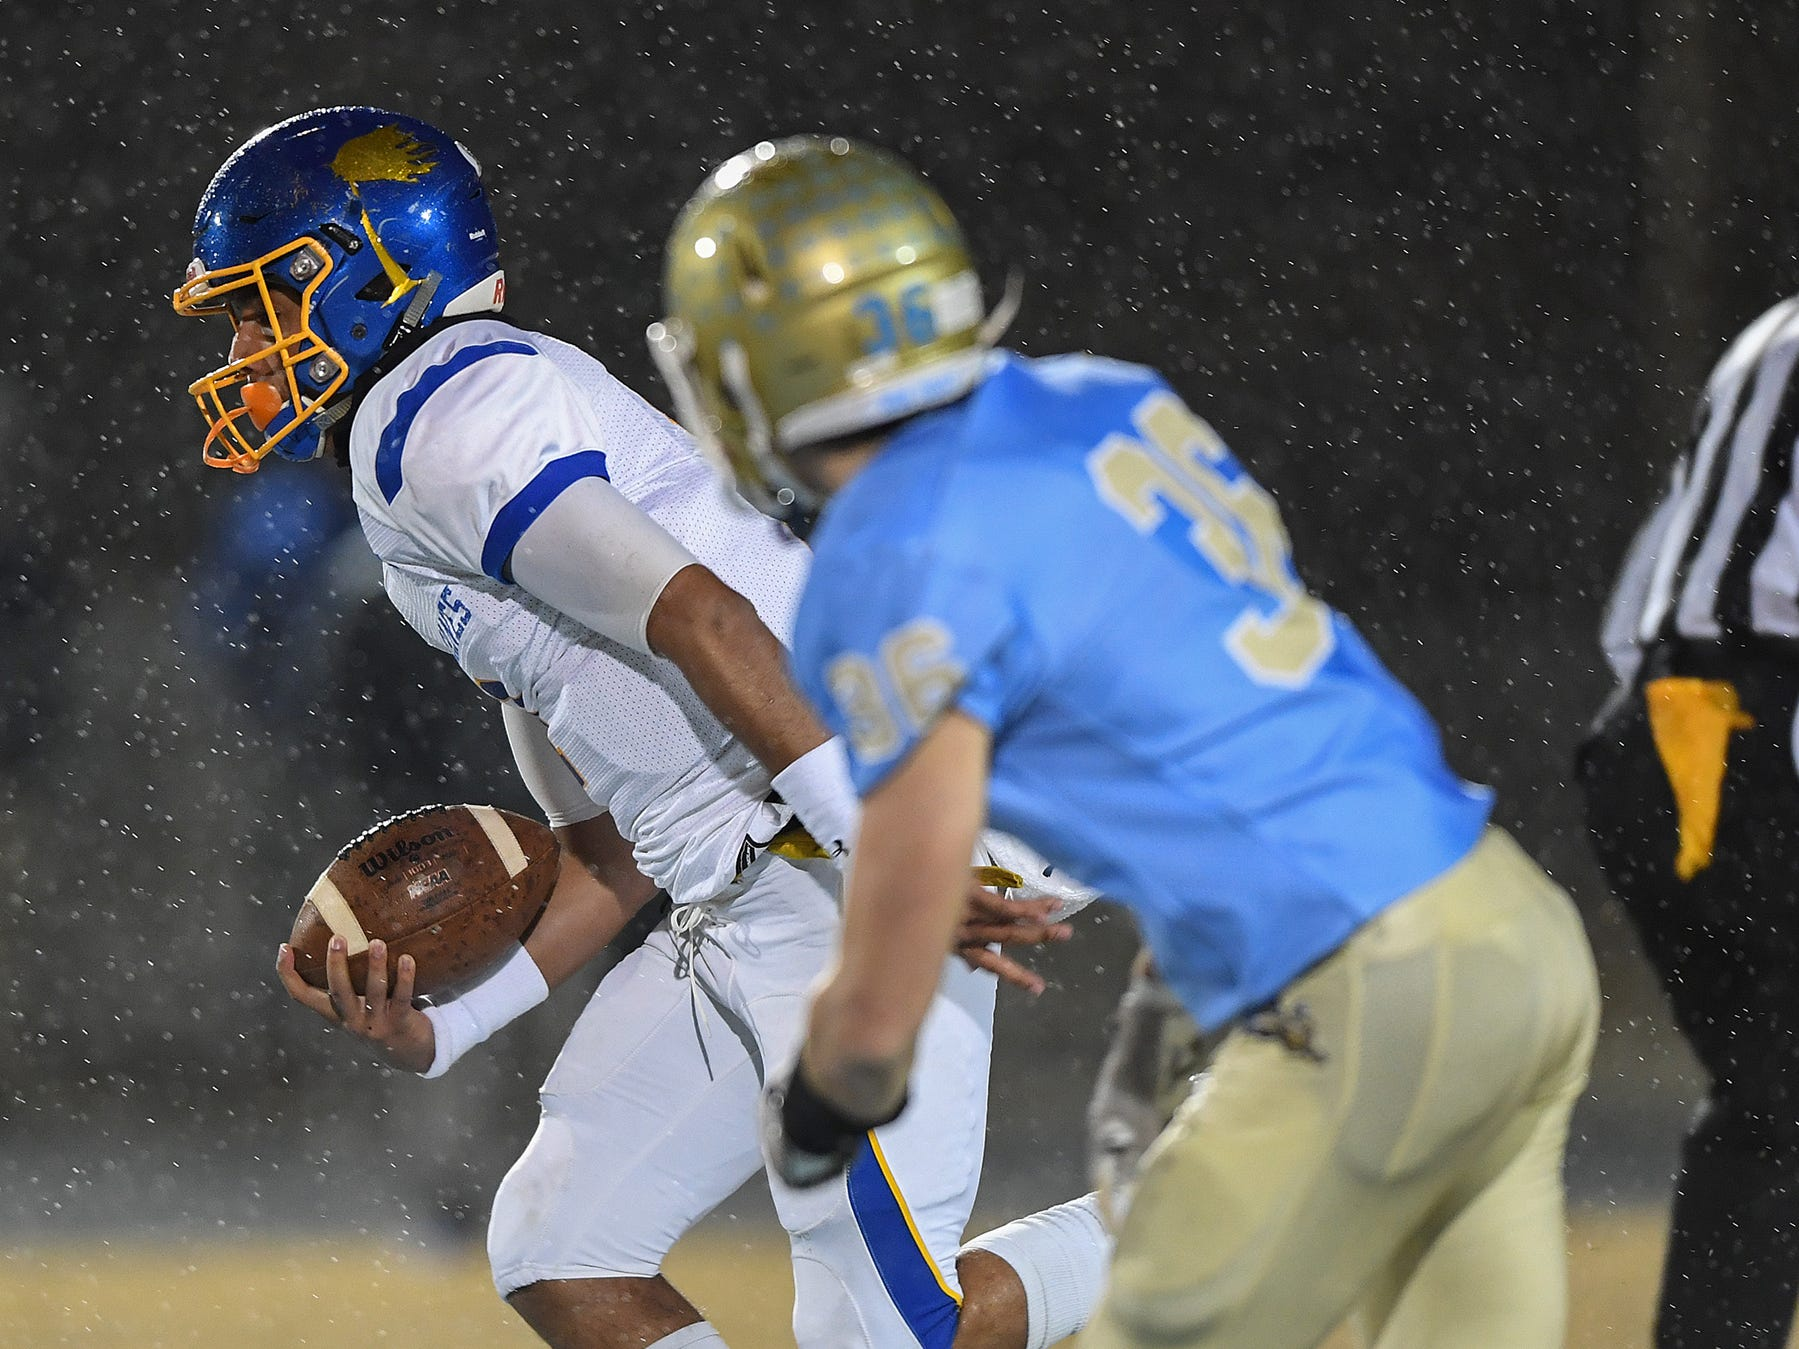 Wren quarterback Tyrell Jackson (1)  carries against Daniel during the third round of the class AAAA playoffs Friday, November 23, 2018, at Daniel High in Central.